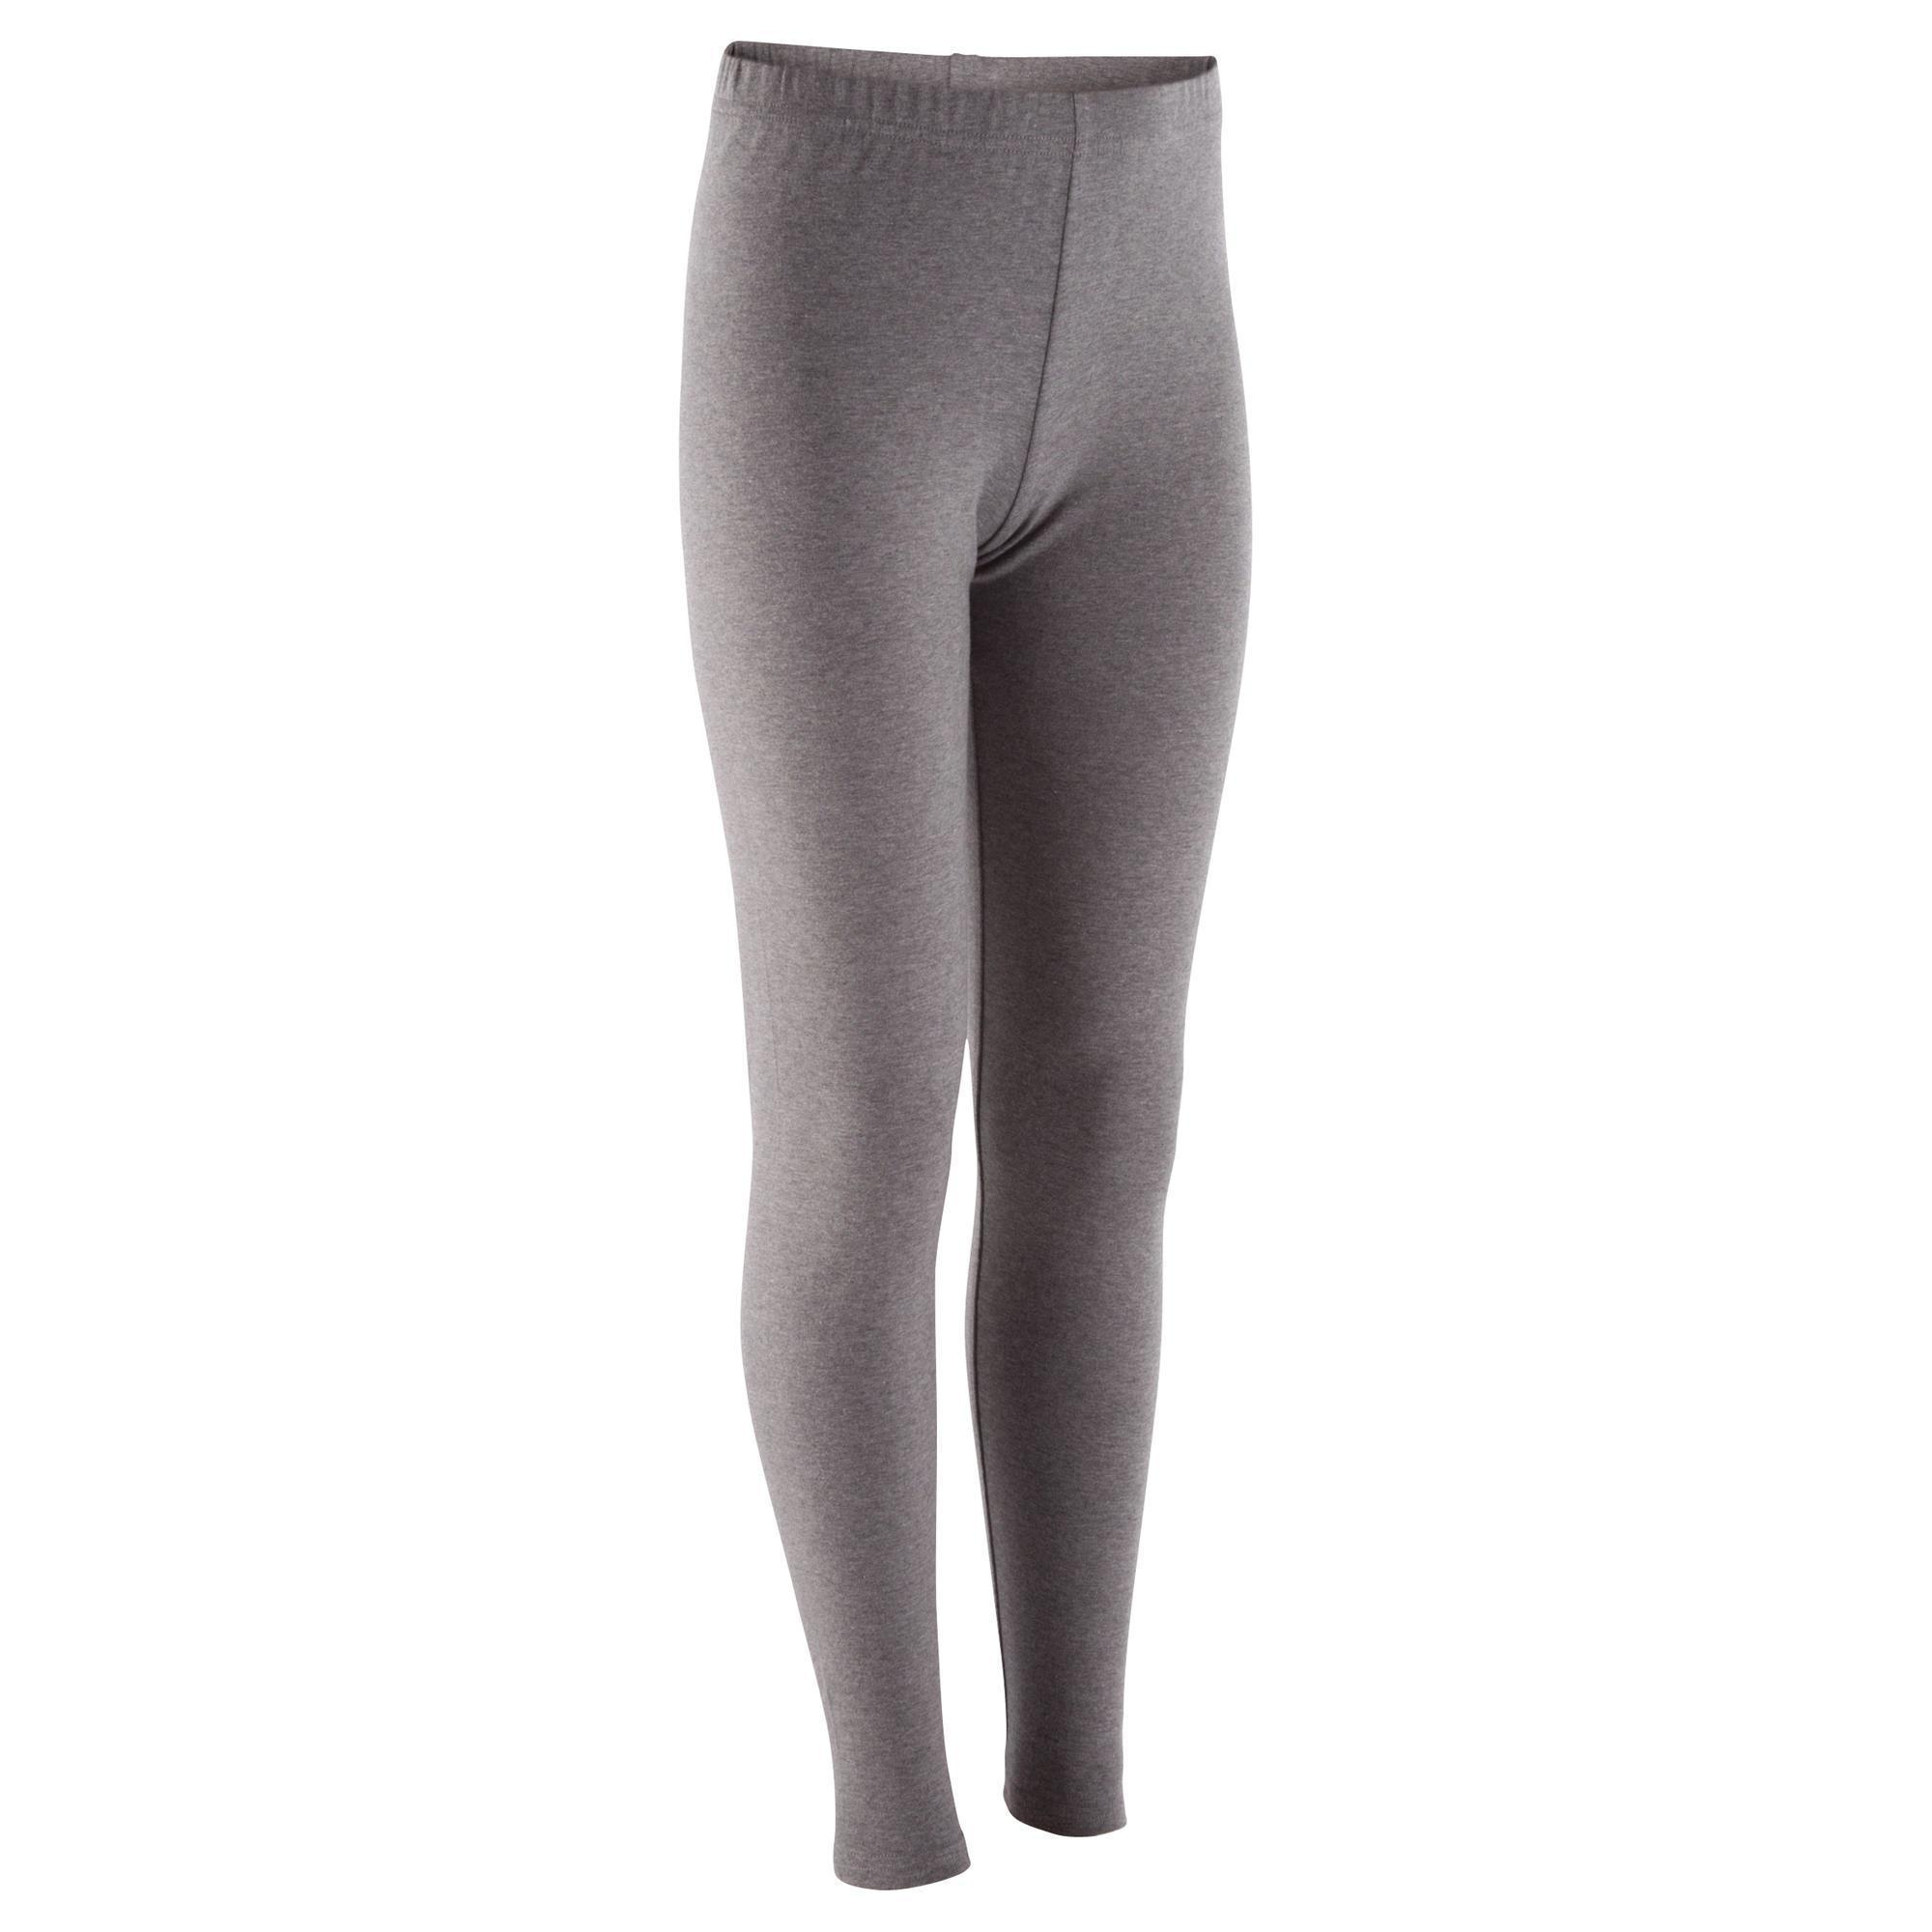 Vêtements de gym fille  c385ffe38e4